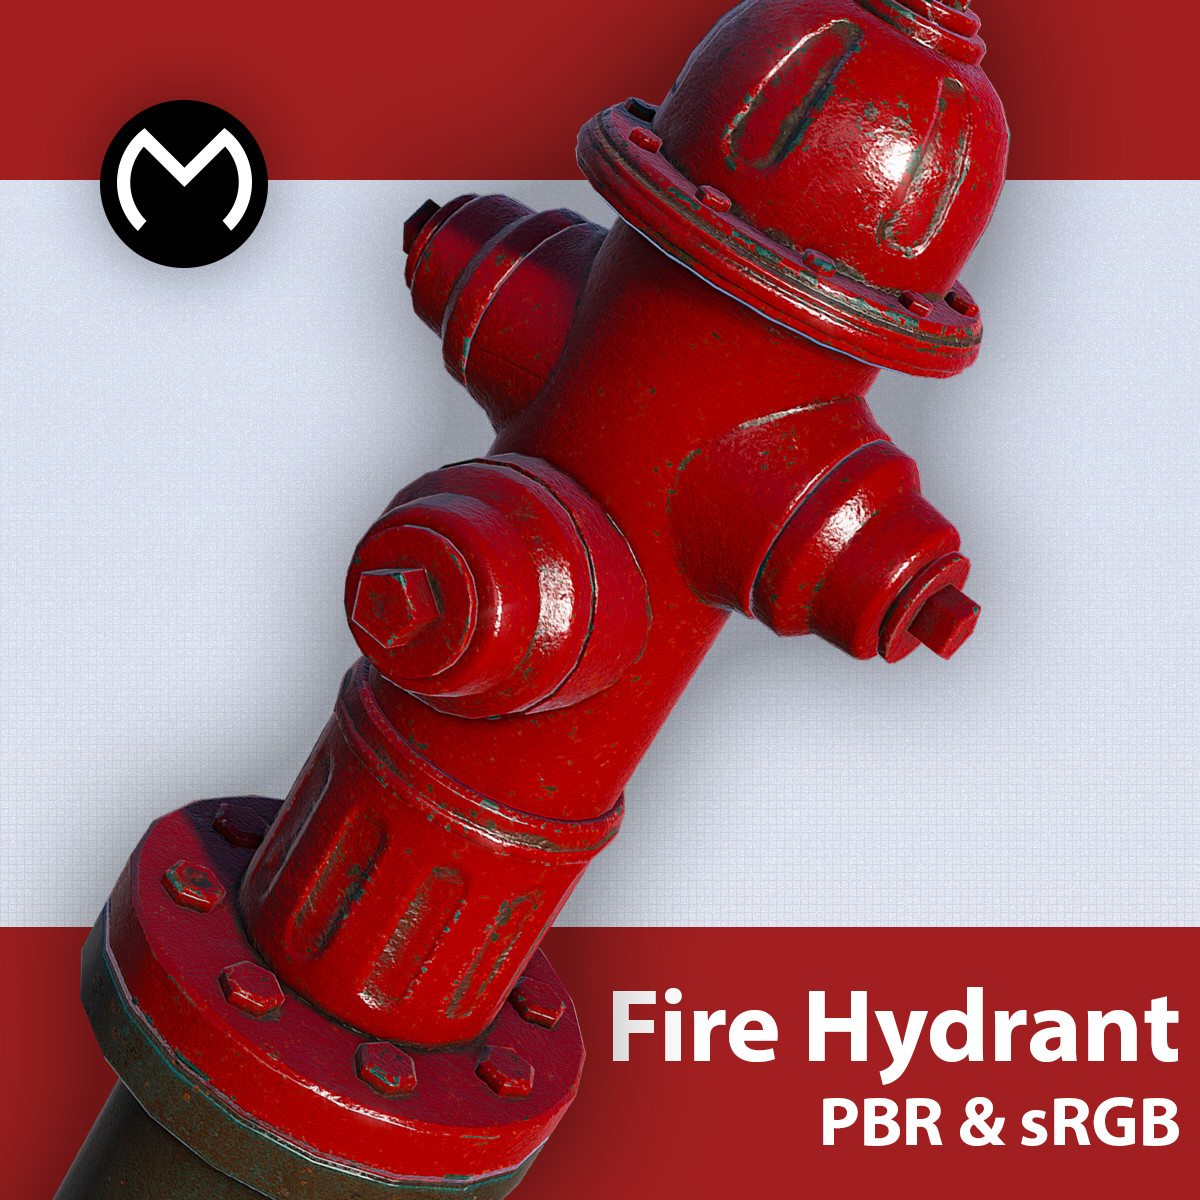 x hydrant - real time